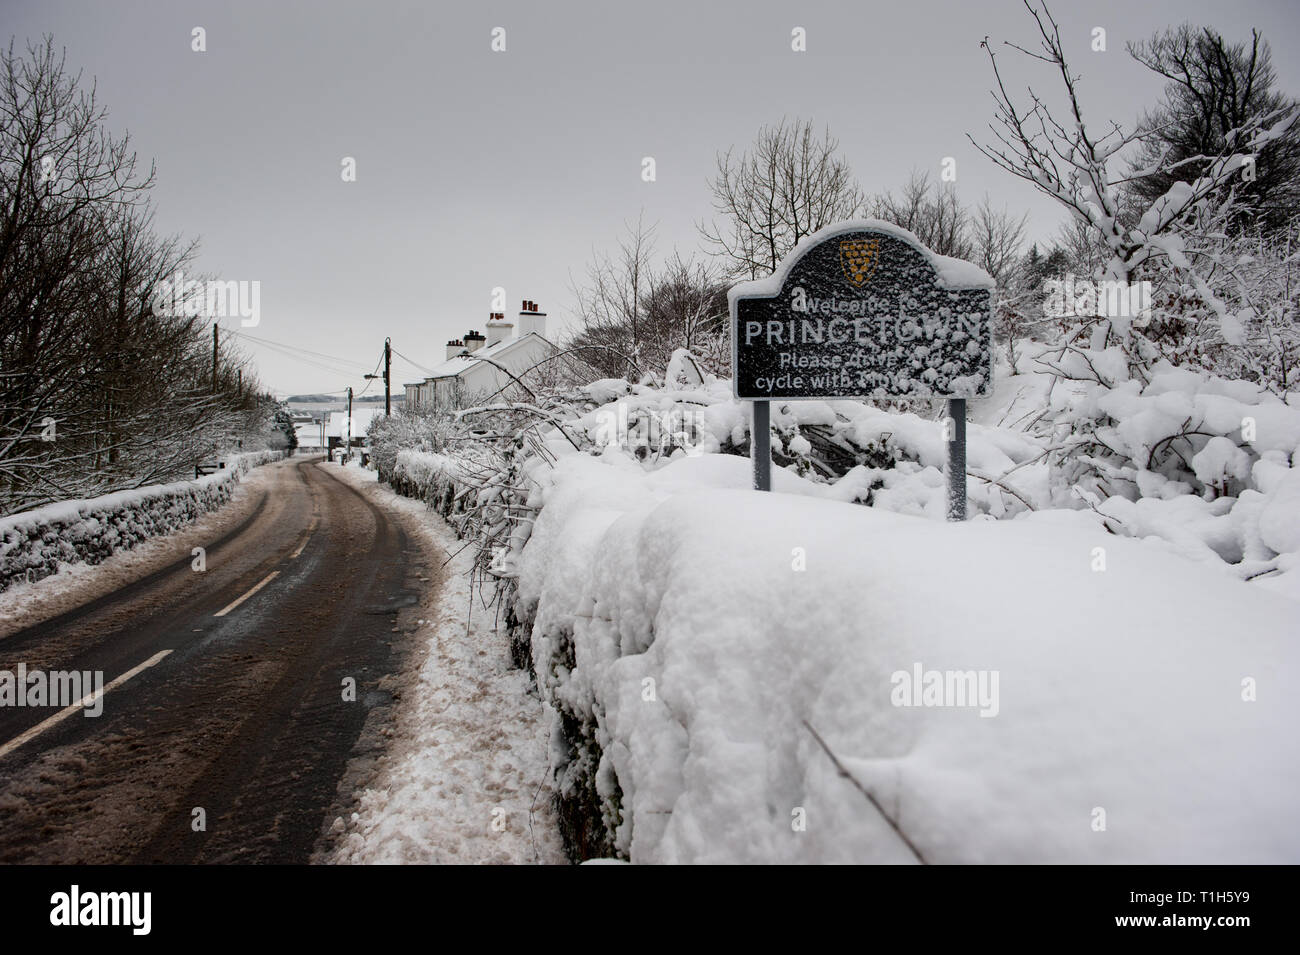 Princetown village sign covered in snow beside slush covered road Stock Photo